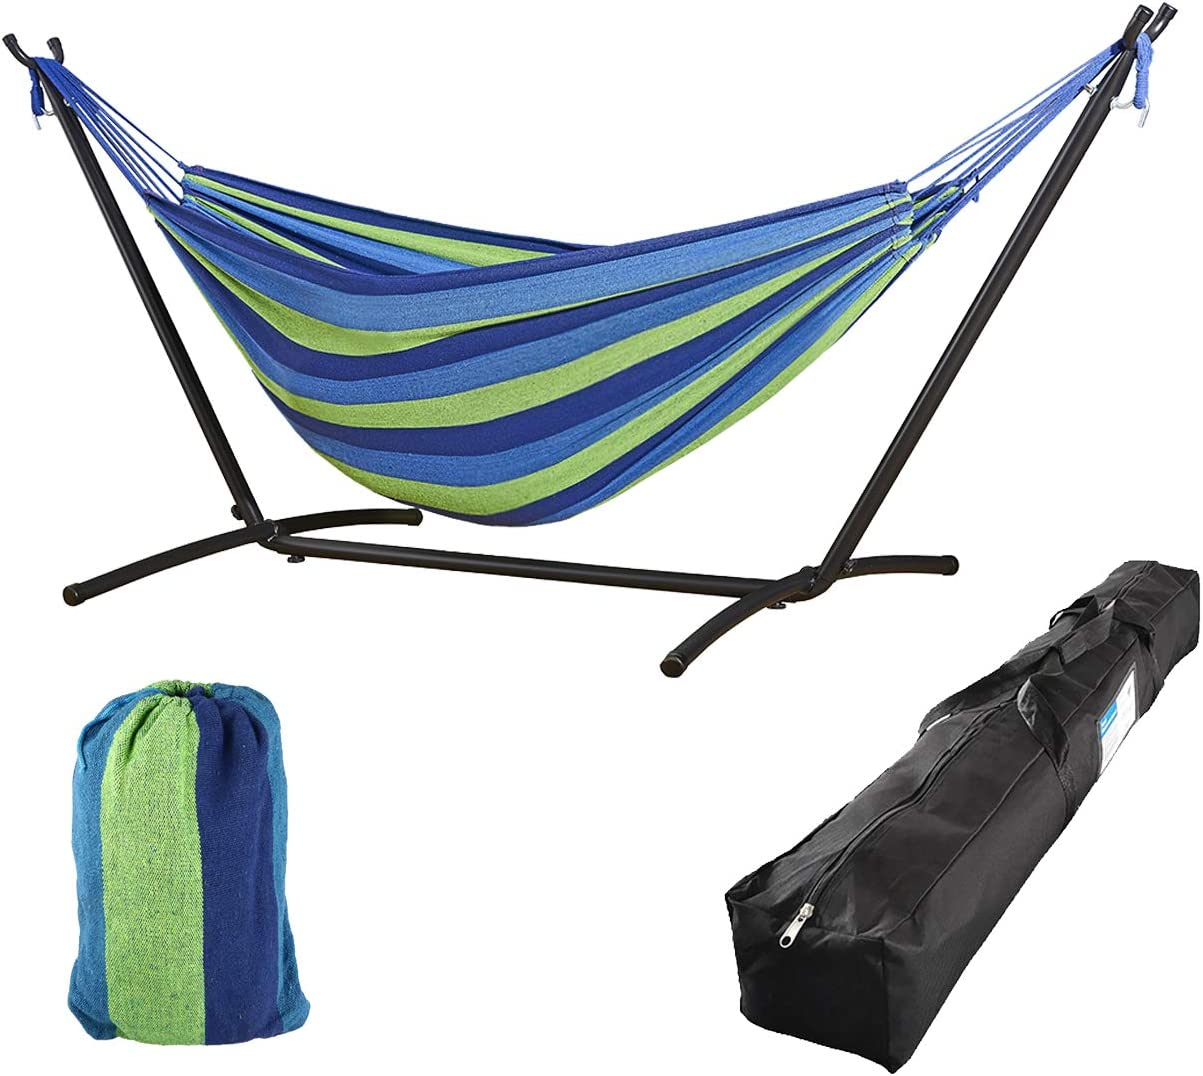 Cloud Mountain Finefind Double Selling rankings Hammock Duty Heavy Max 55% OFF with Stand Ste